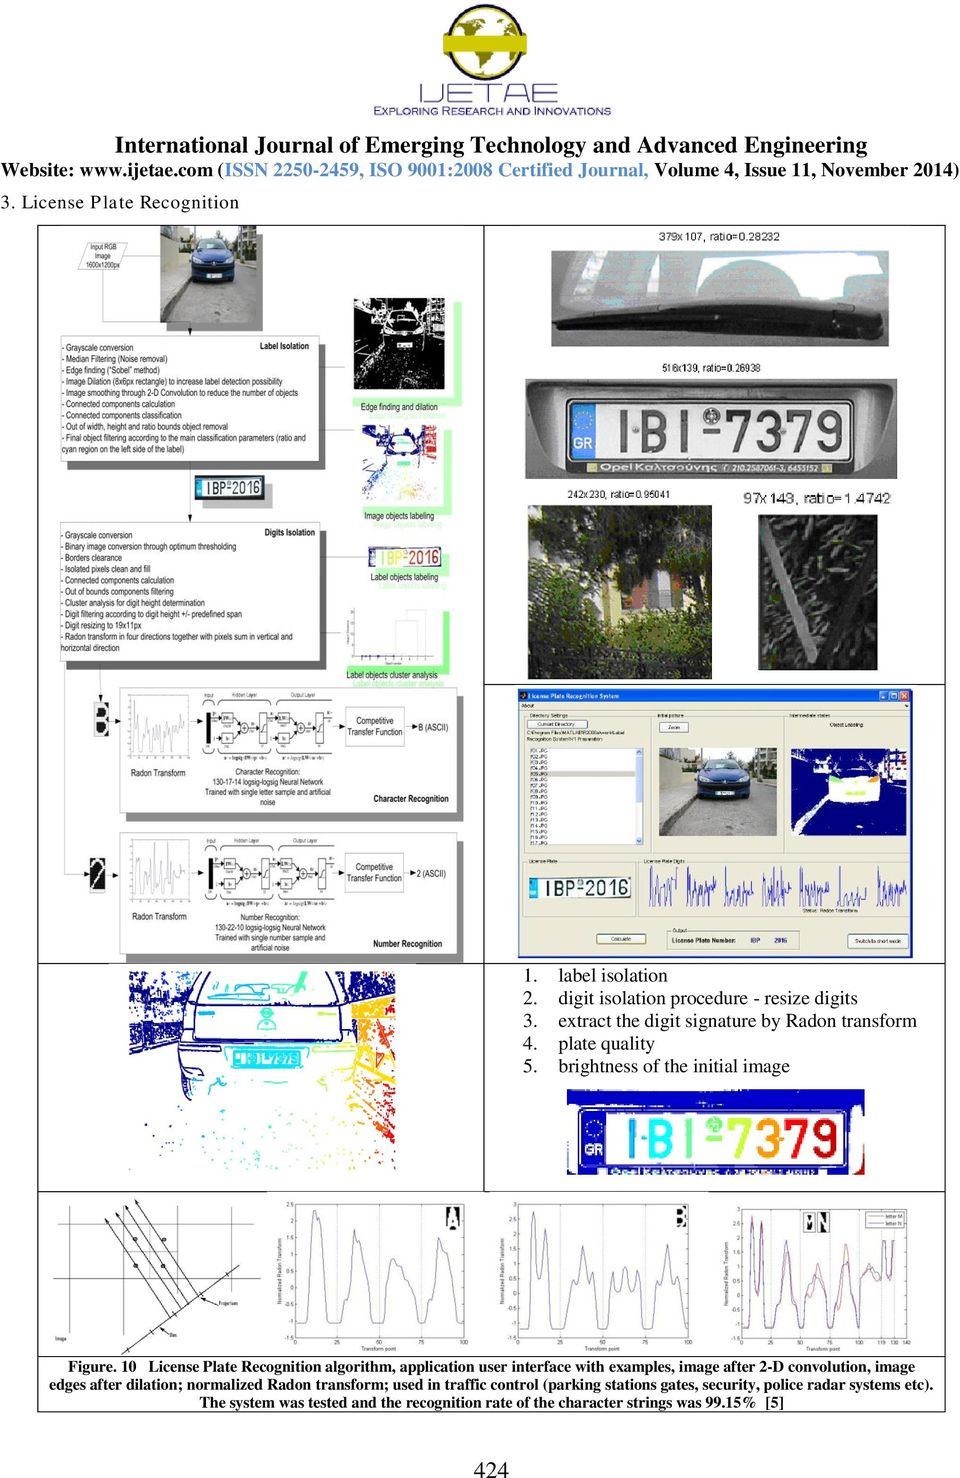 10 License Plate Recognition algorithm, application user interface with examples, image after 2-D convolution, image edges after